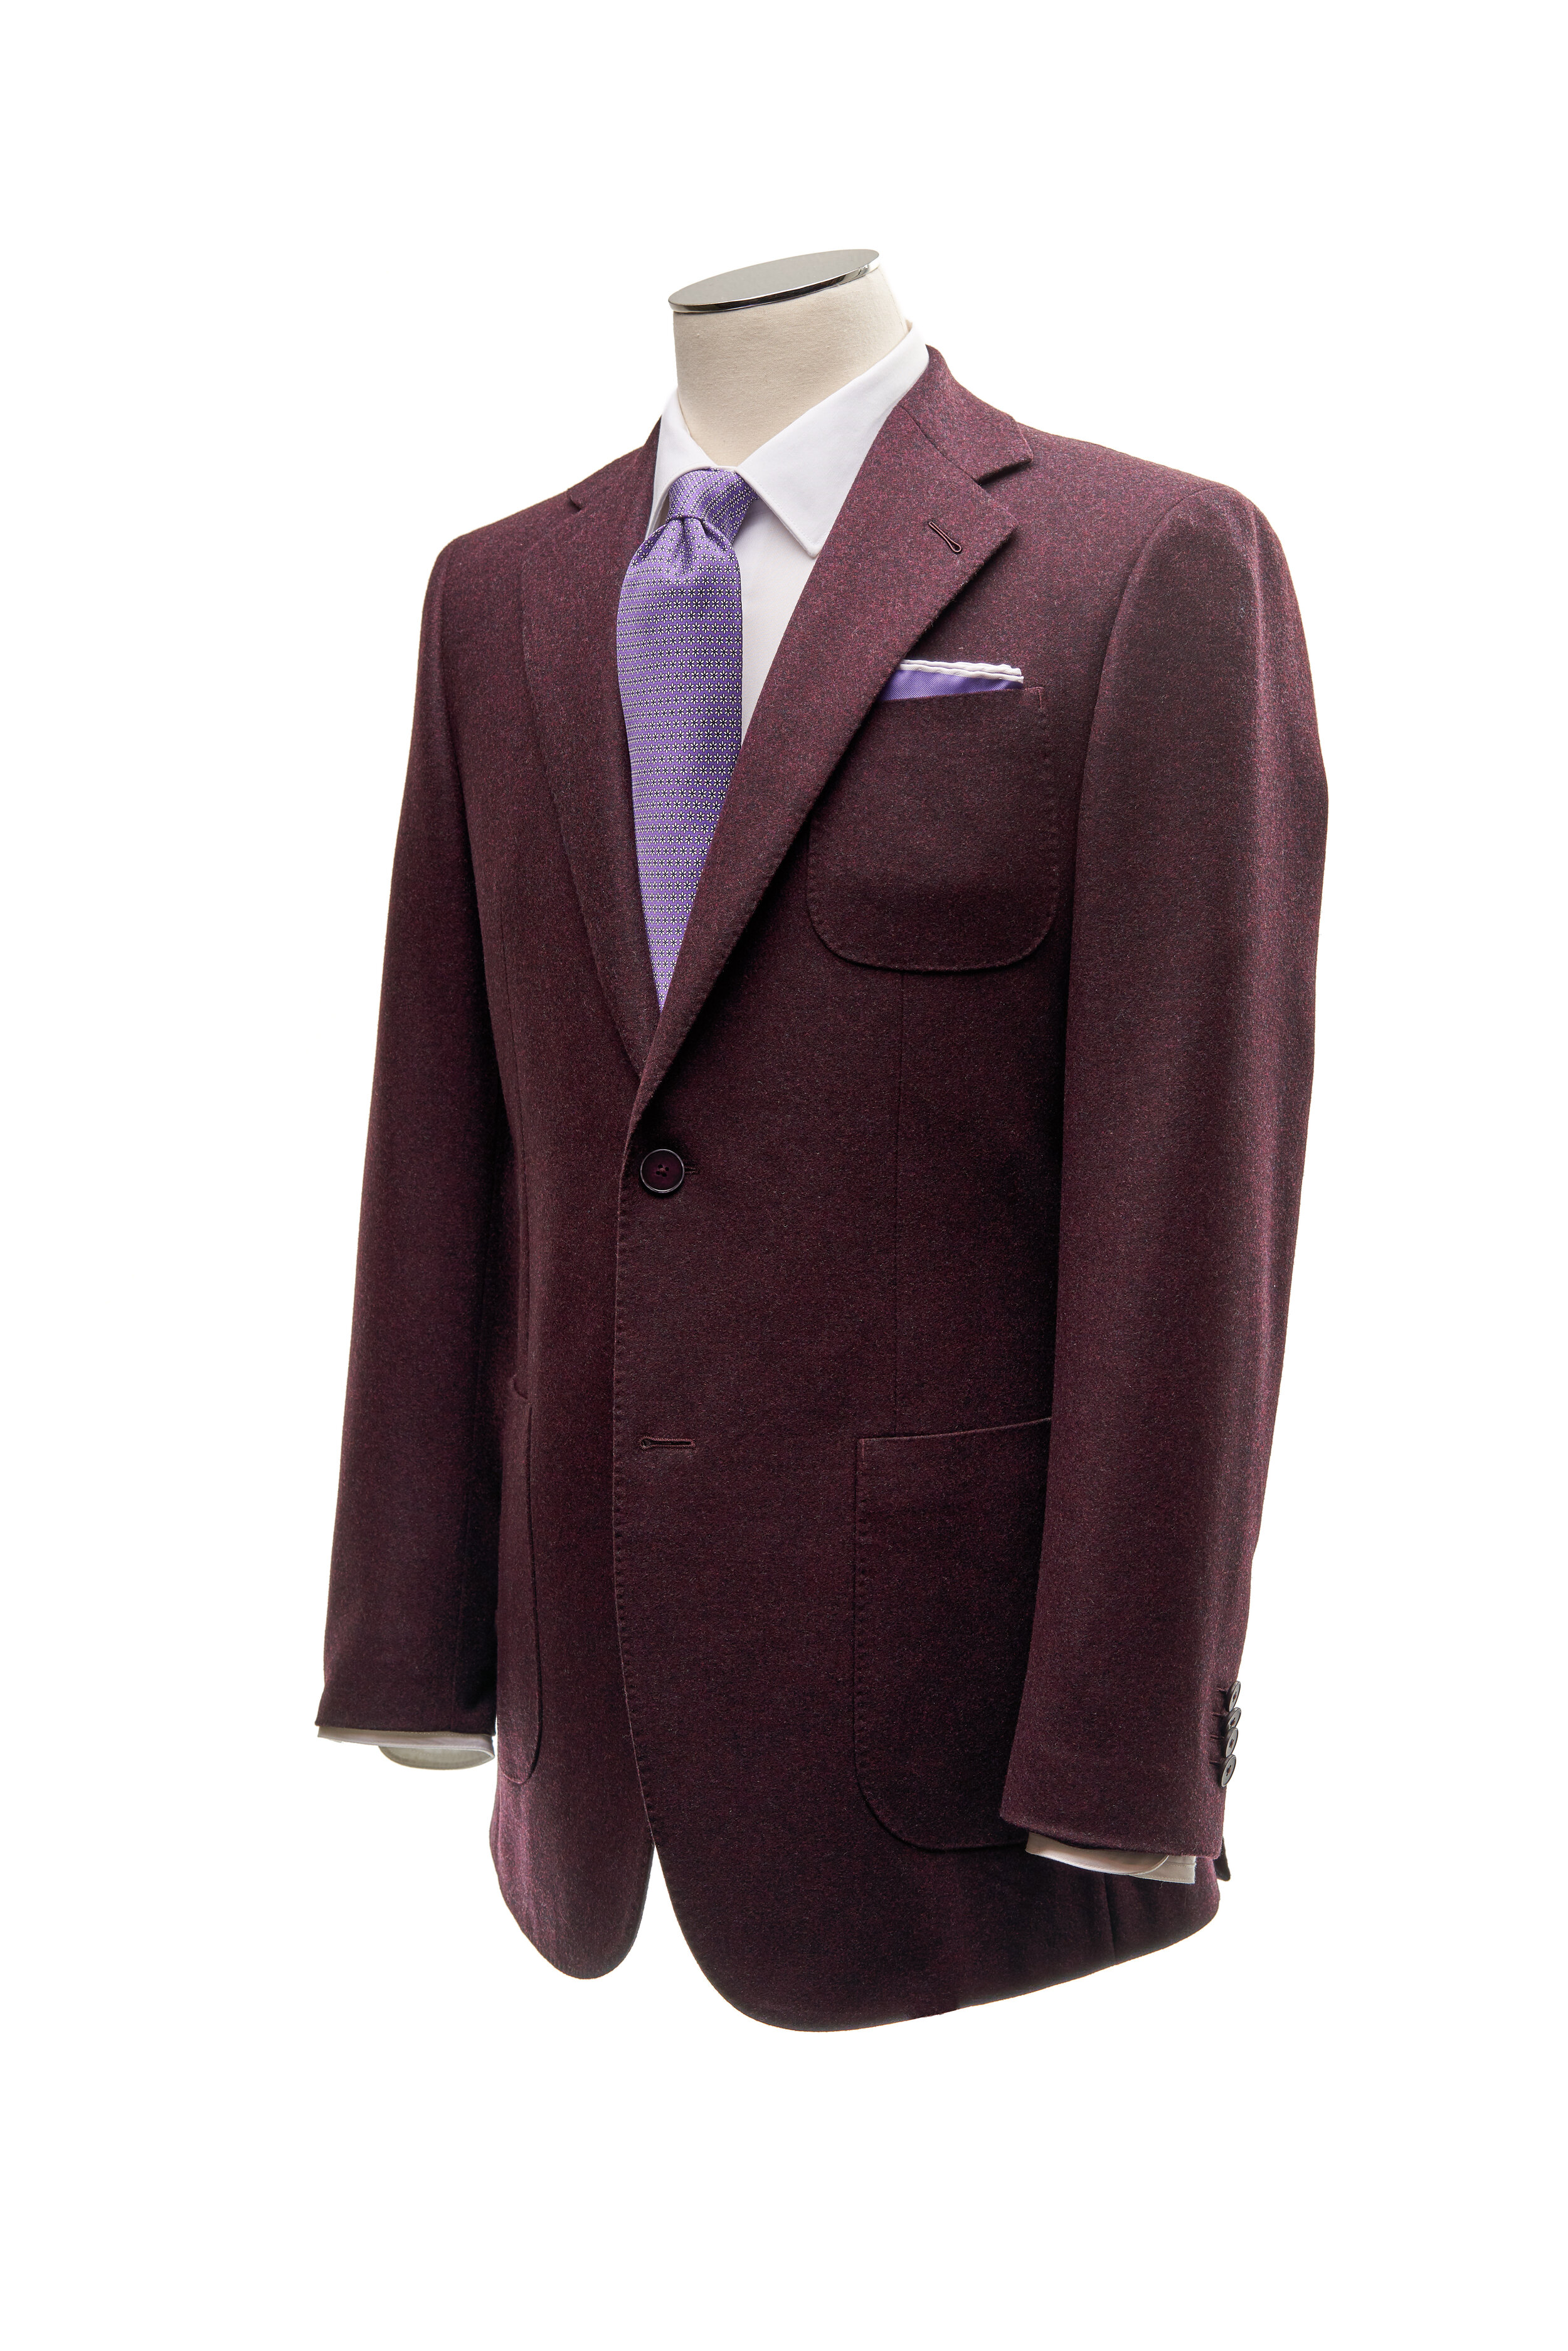 Burgundy Flannel - Single breasted burgundy flannel jacket. Two button, notch lapel, patch pockets. Cloth composition 90% wool 10% Silk, 420g/m.